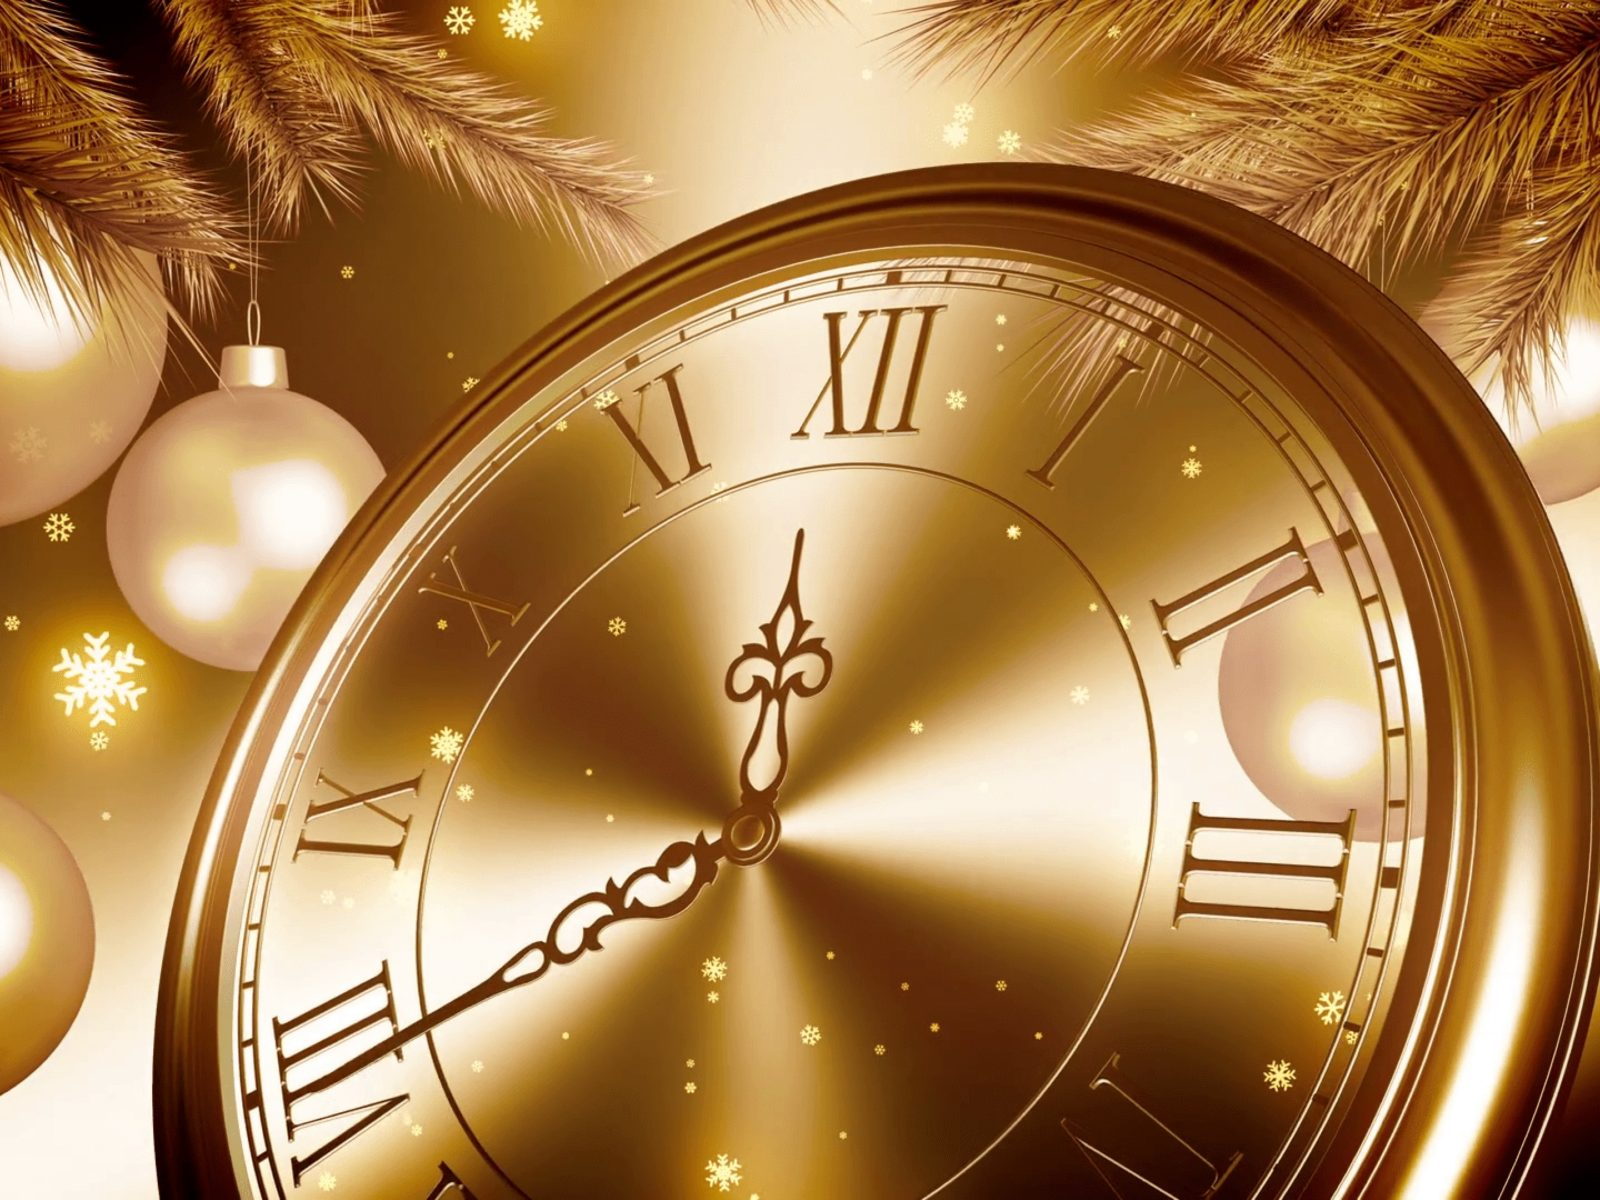 Happy New Year 2020 Golden Clock Countdown In New Years Eve 1600x1200